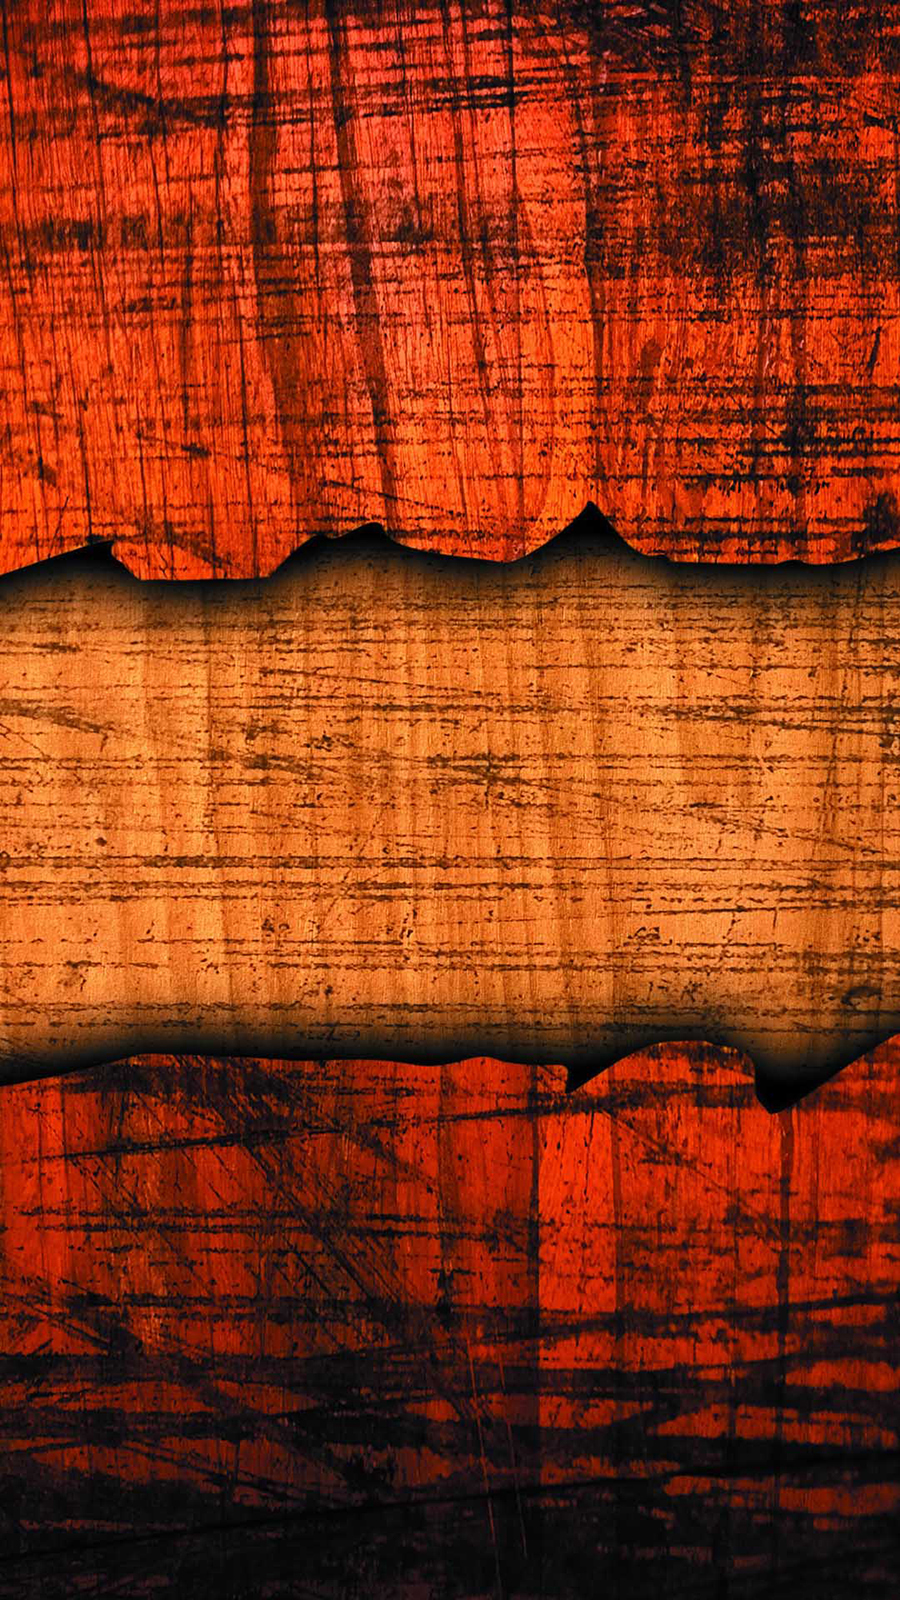 Abstract Wood Textures HD Wallpapers Free Download